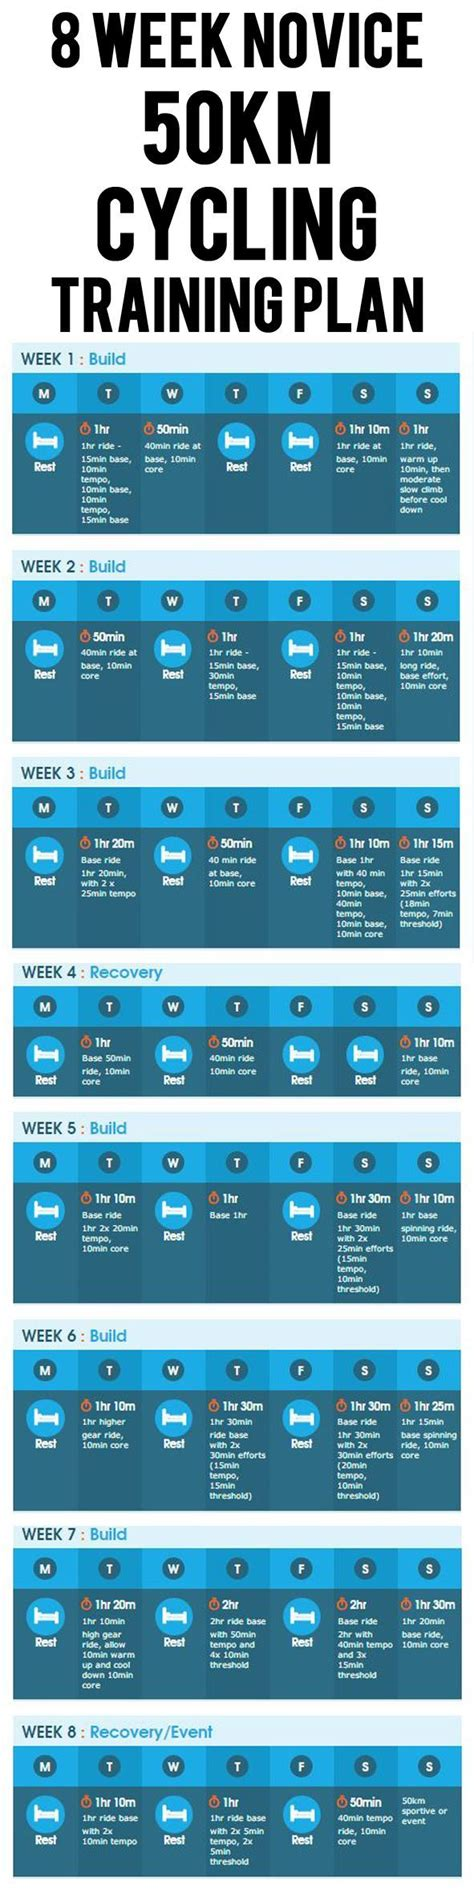 couch to cycling plan best 25 mtb ideas on pinterest